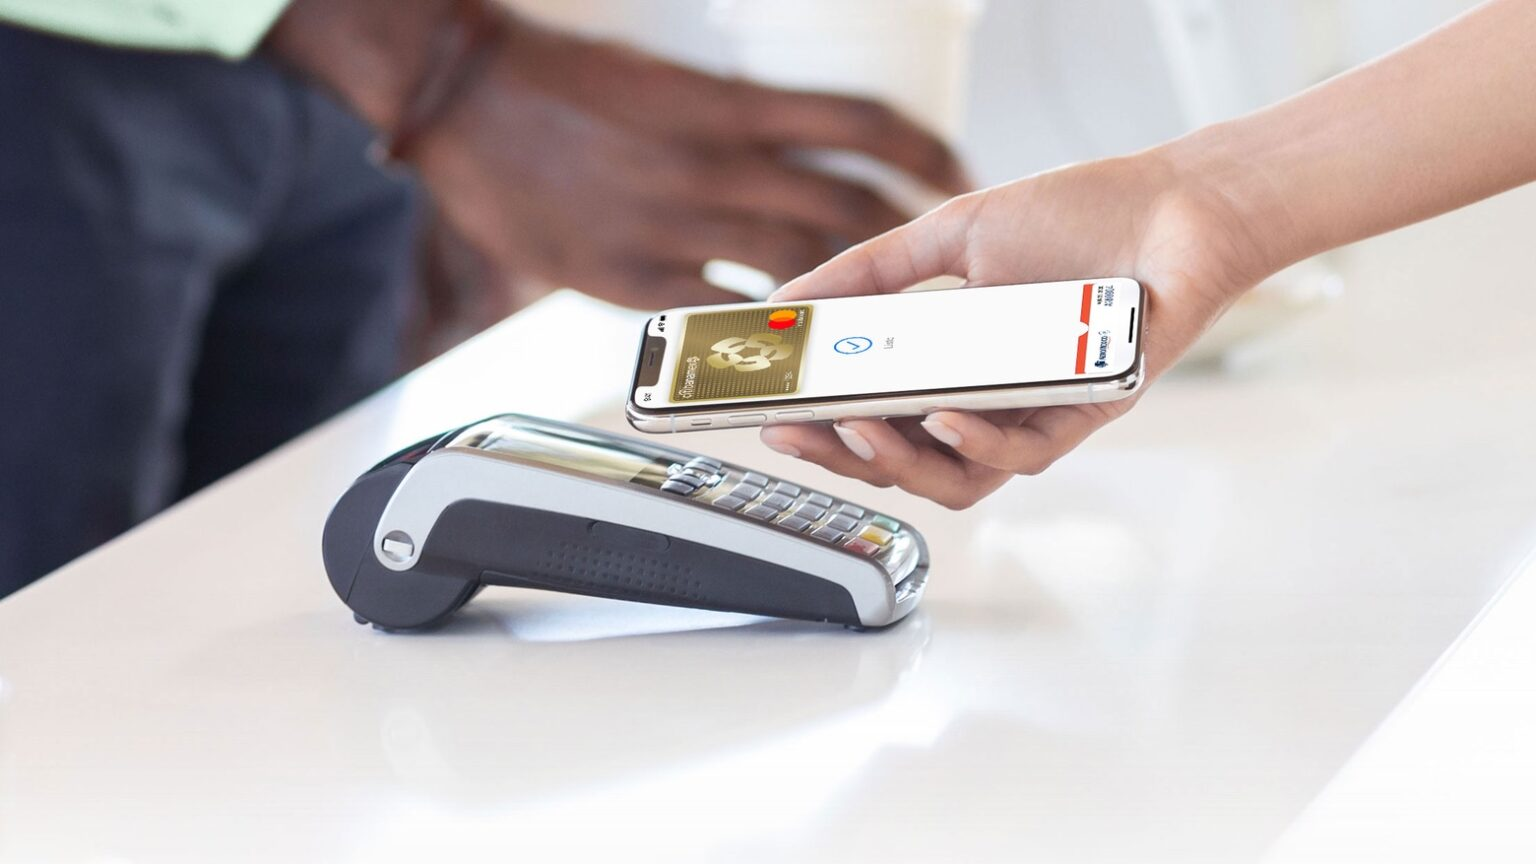 Apple Pay heads south of the border, down Mexico way